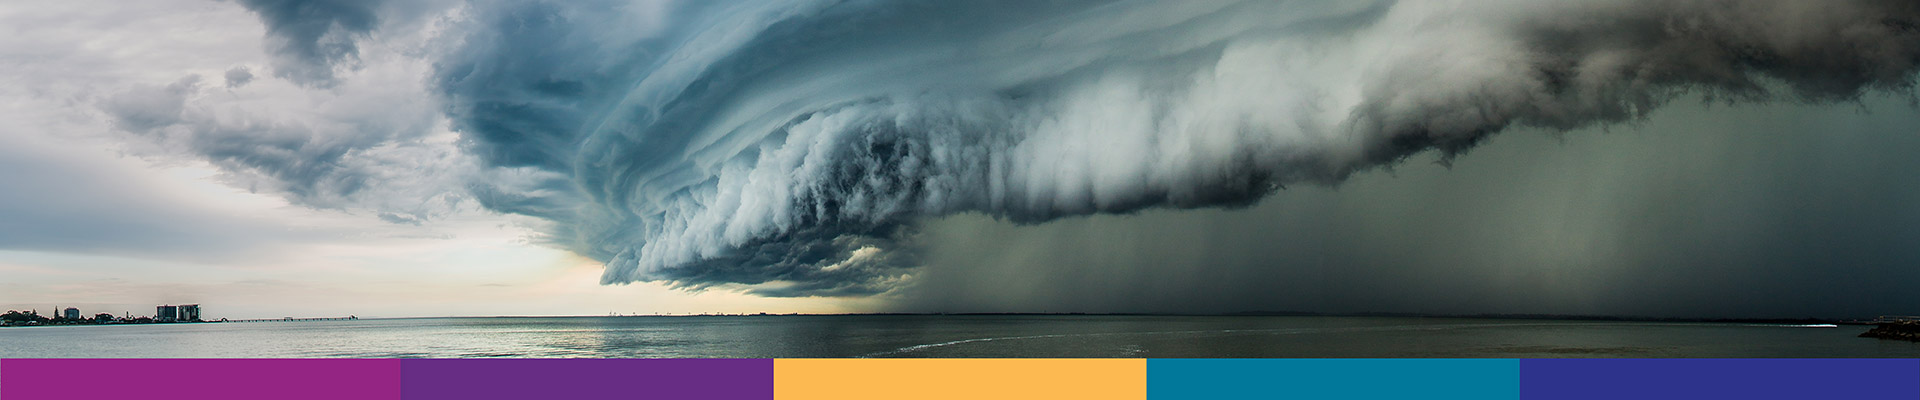 Large storm cell over the ocean